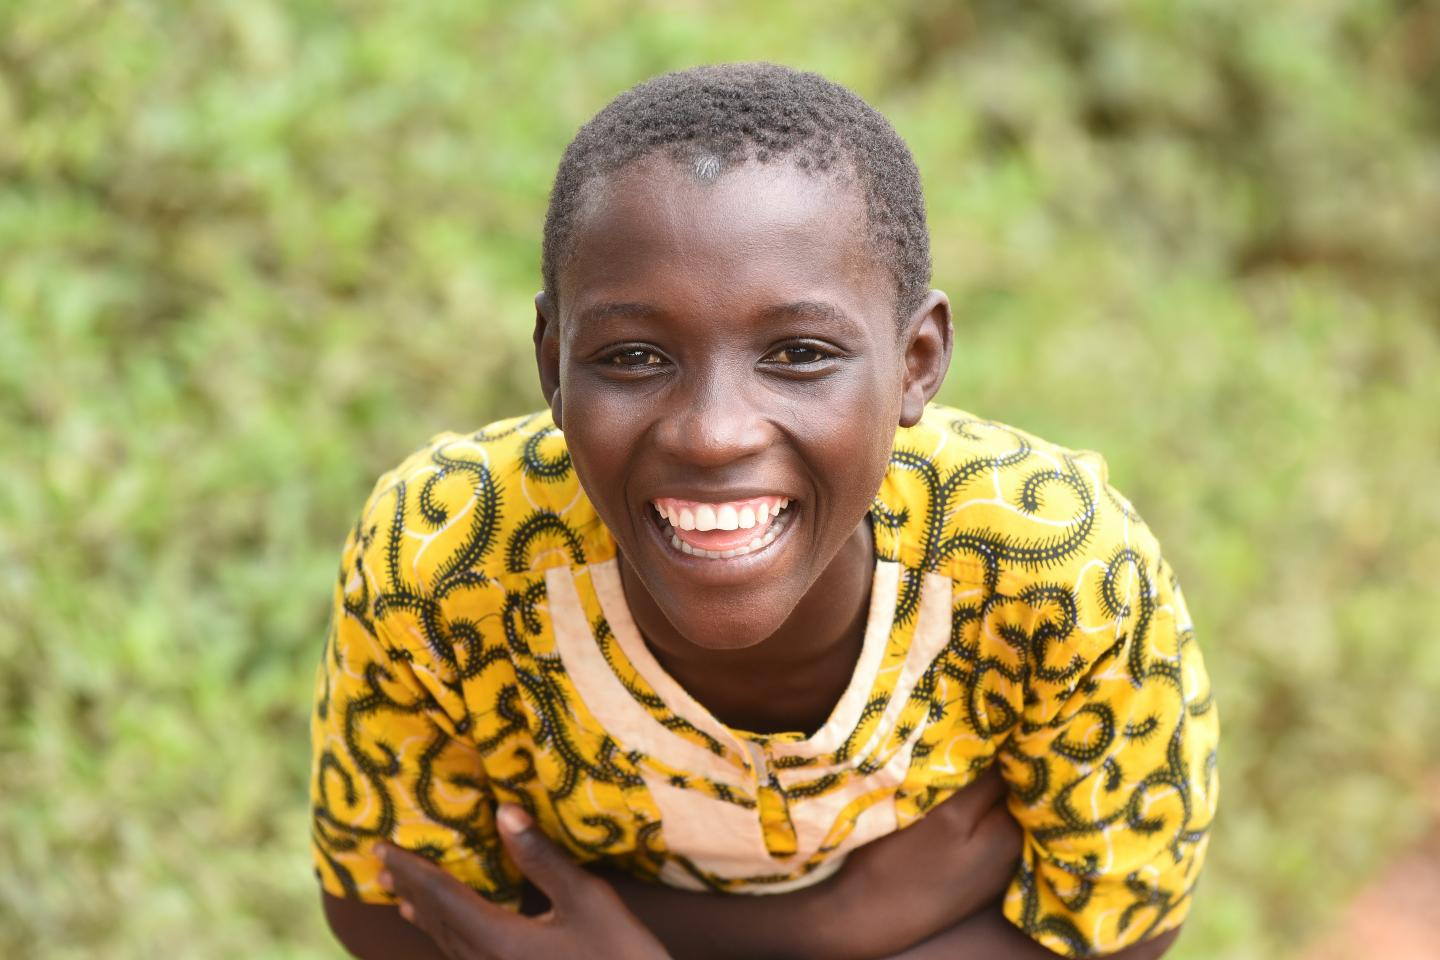 A smiling boy in the village of Zaliohoua, in the West of Côte d'Ivoire.